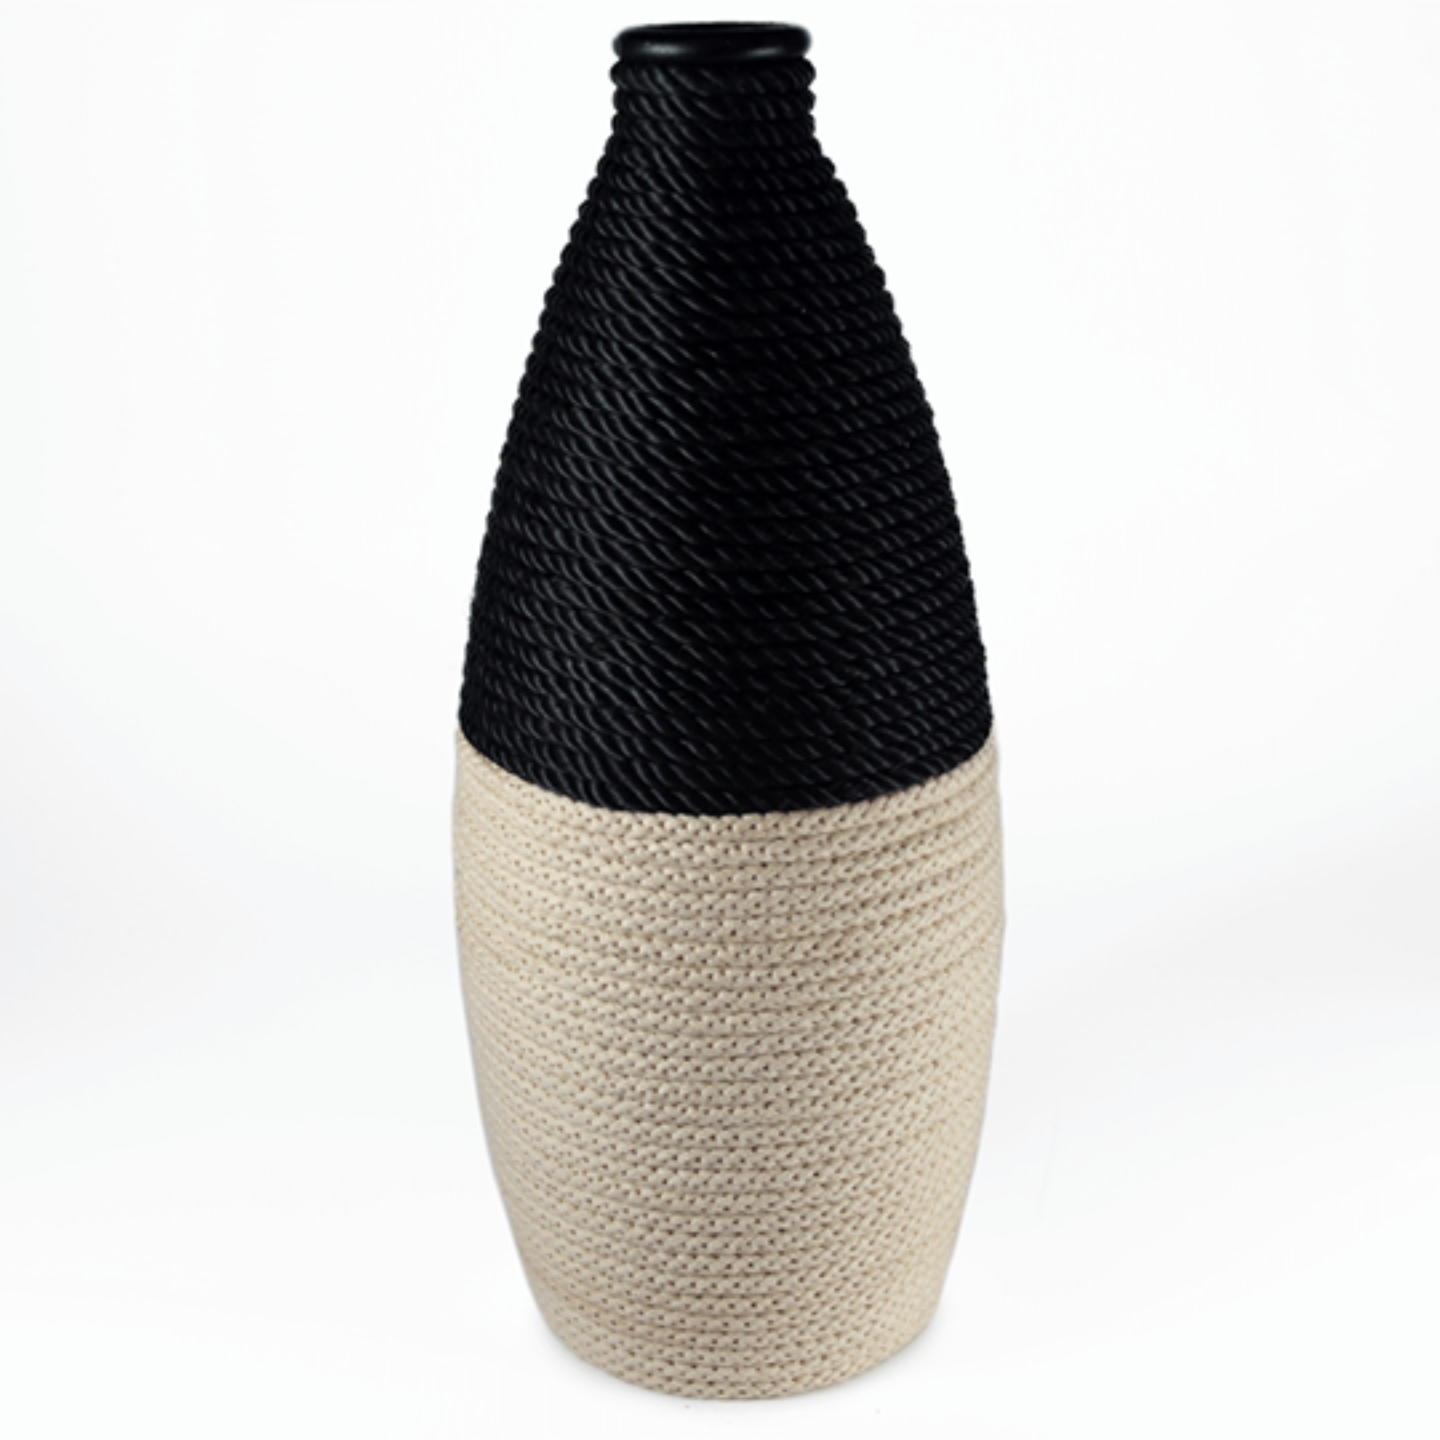 Black & off-white roped bottle